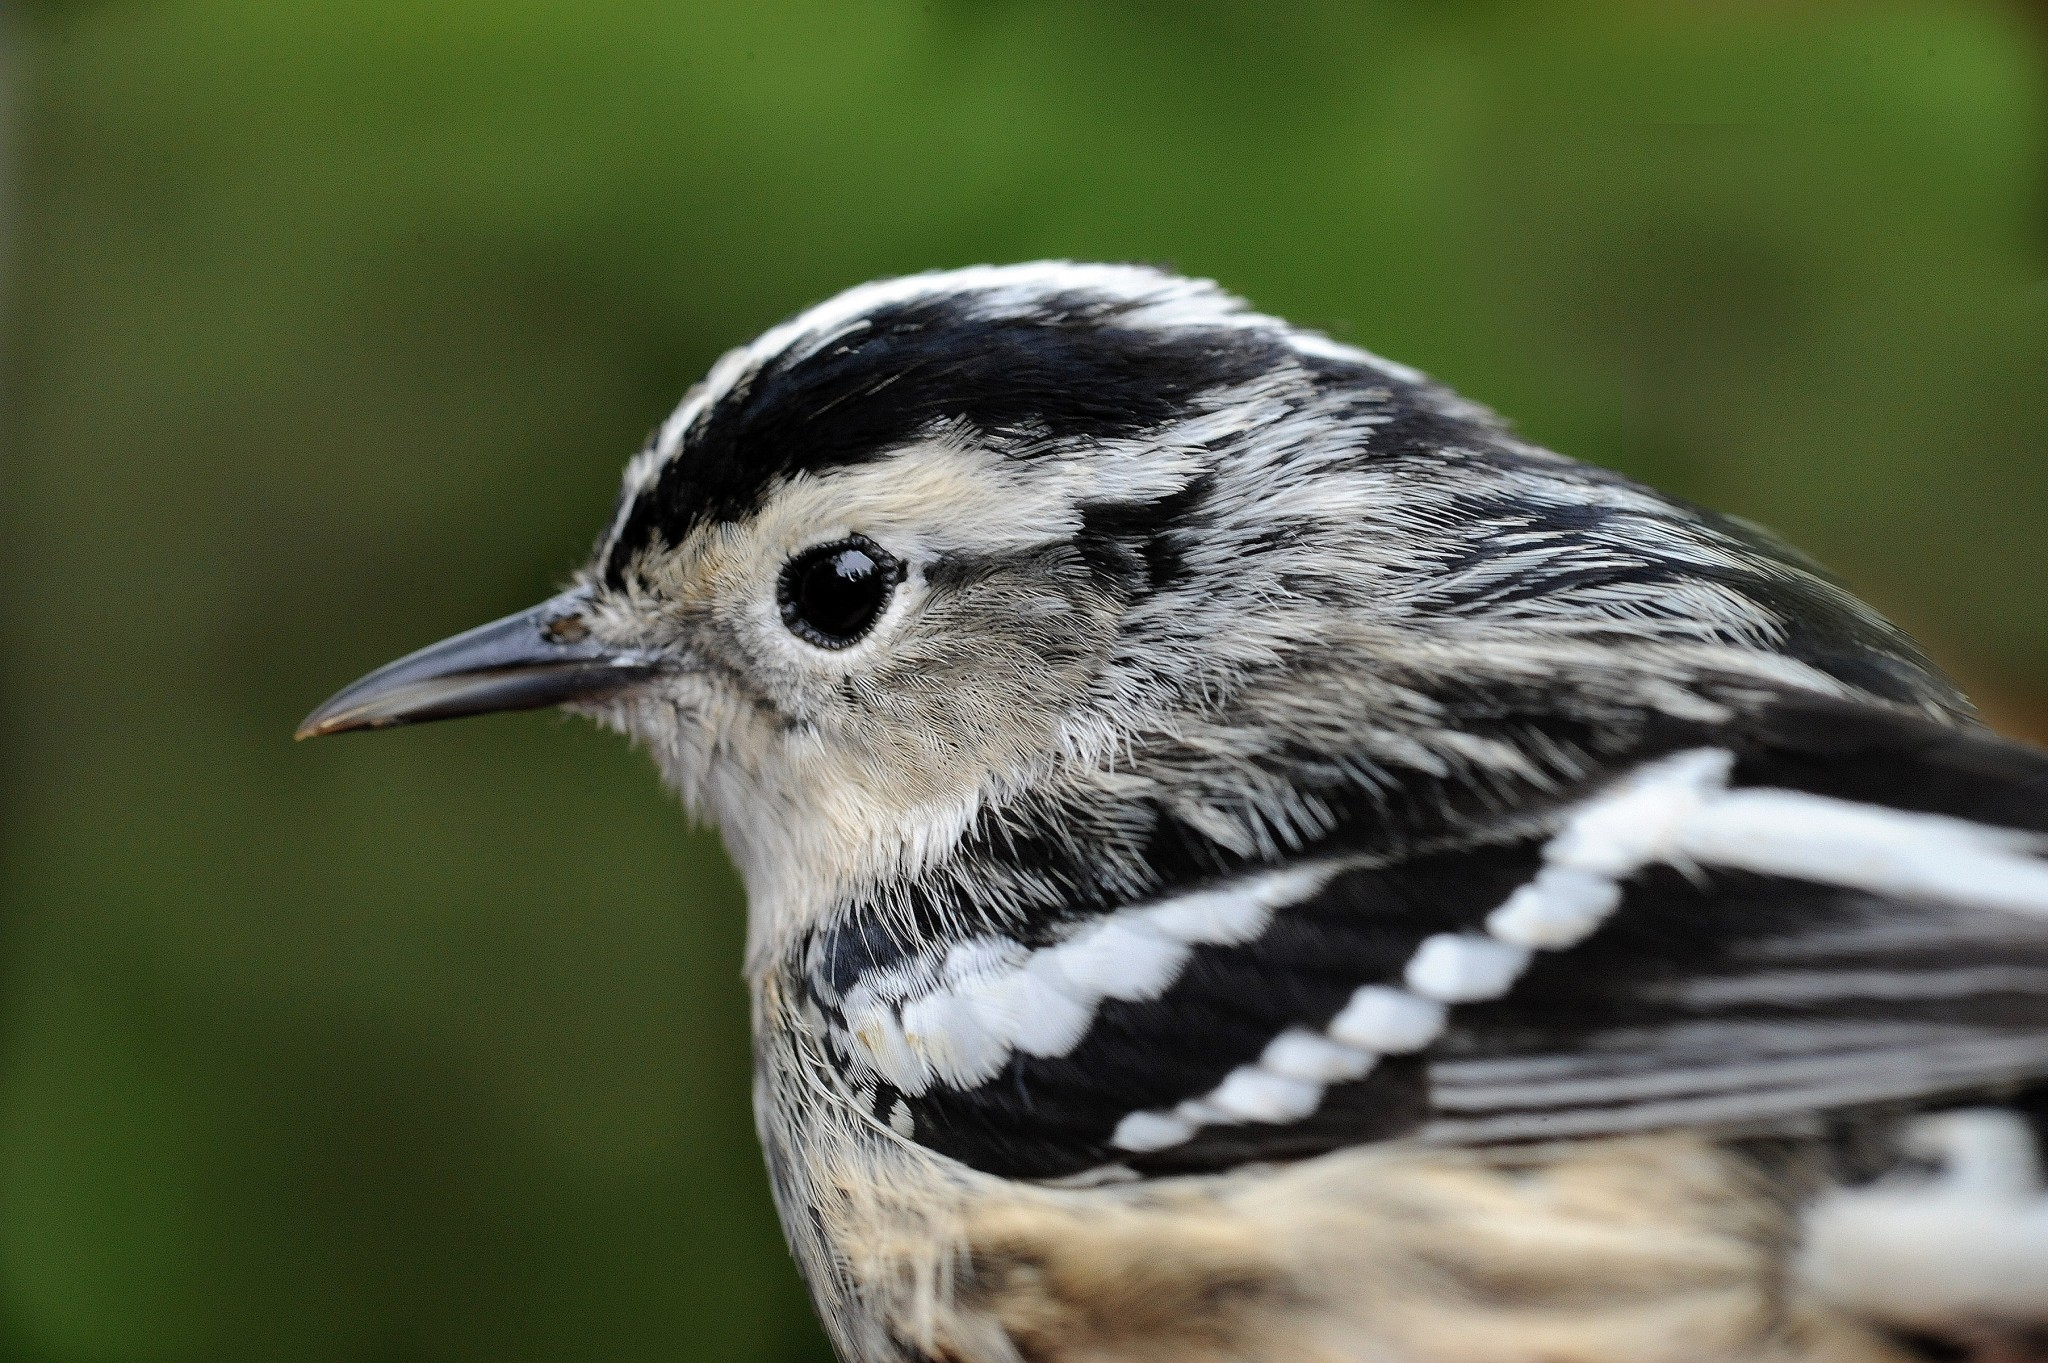 The aptly named and beautifully marked black and white warbler is likely to be among the warblers seen now in lakeshore natural areas. (Photo by Art Weber)